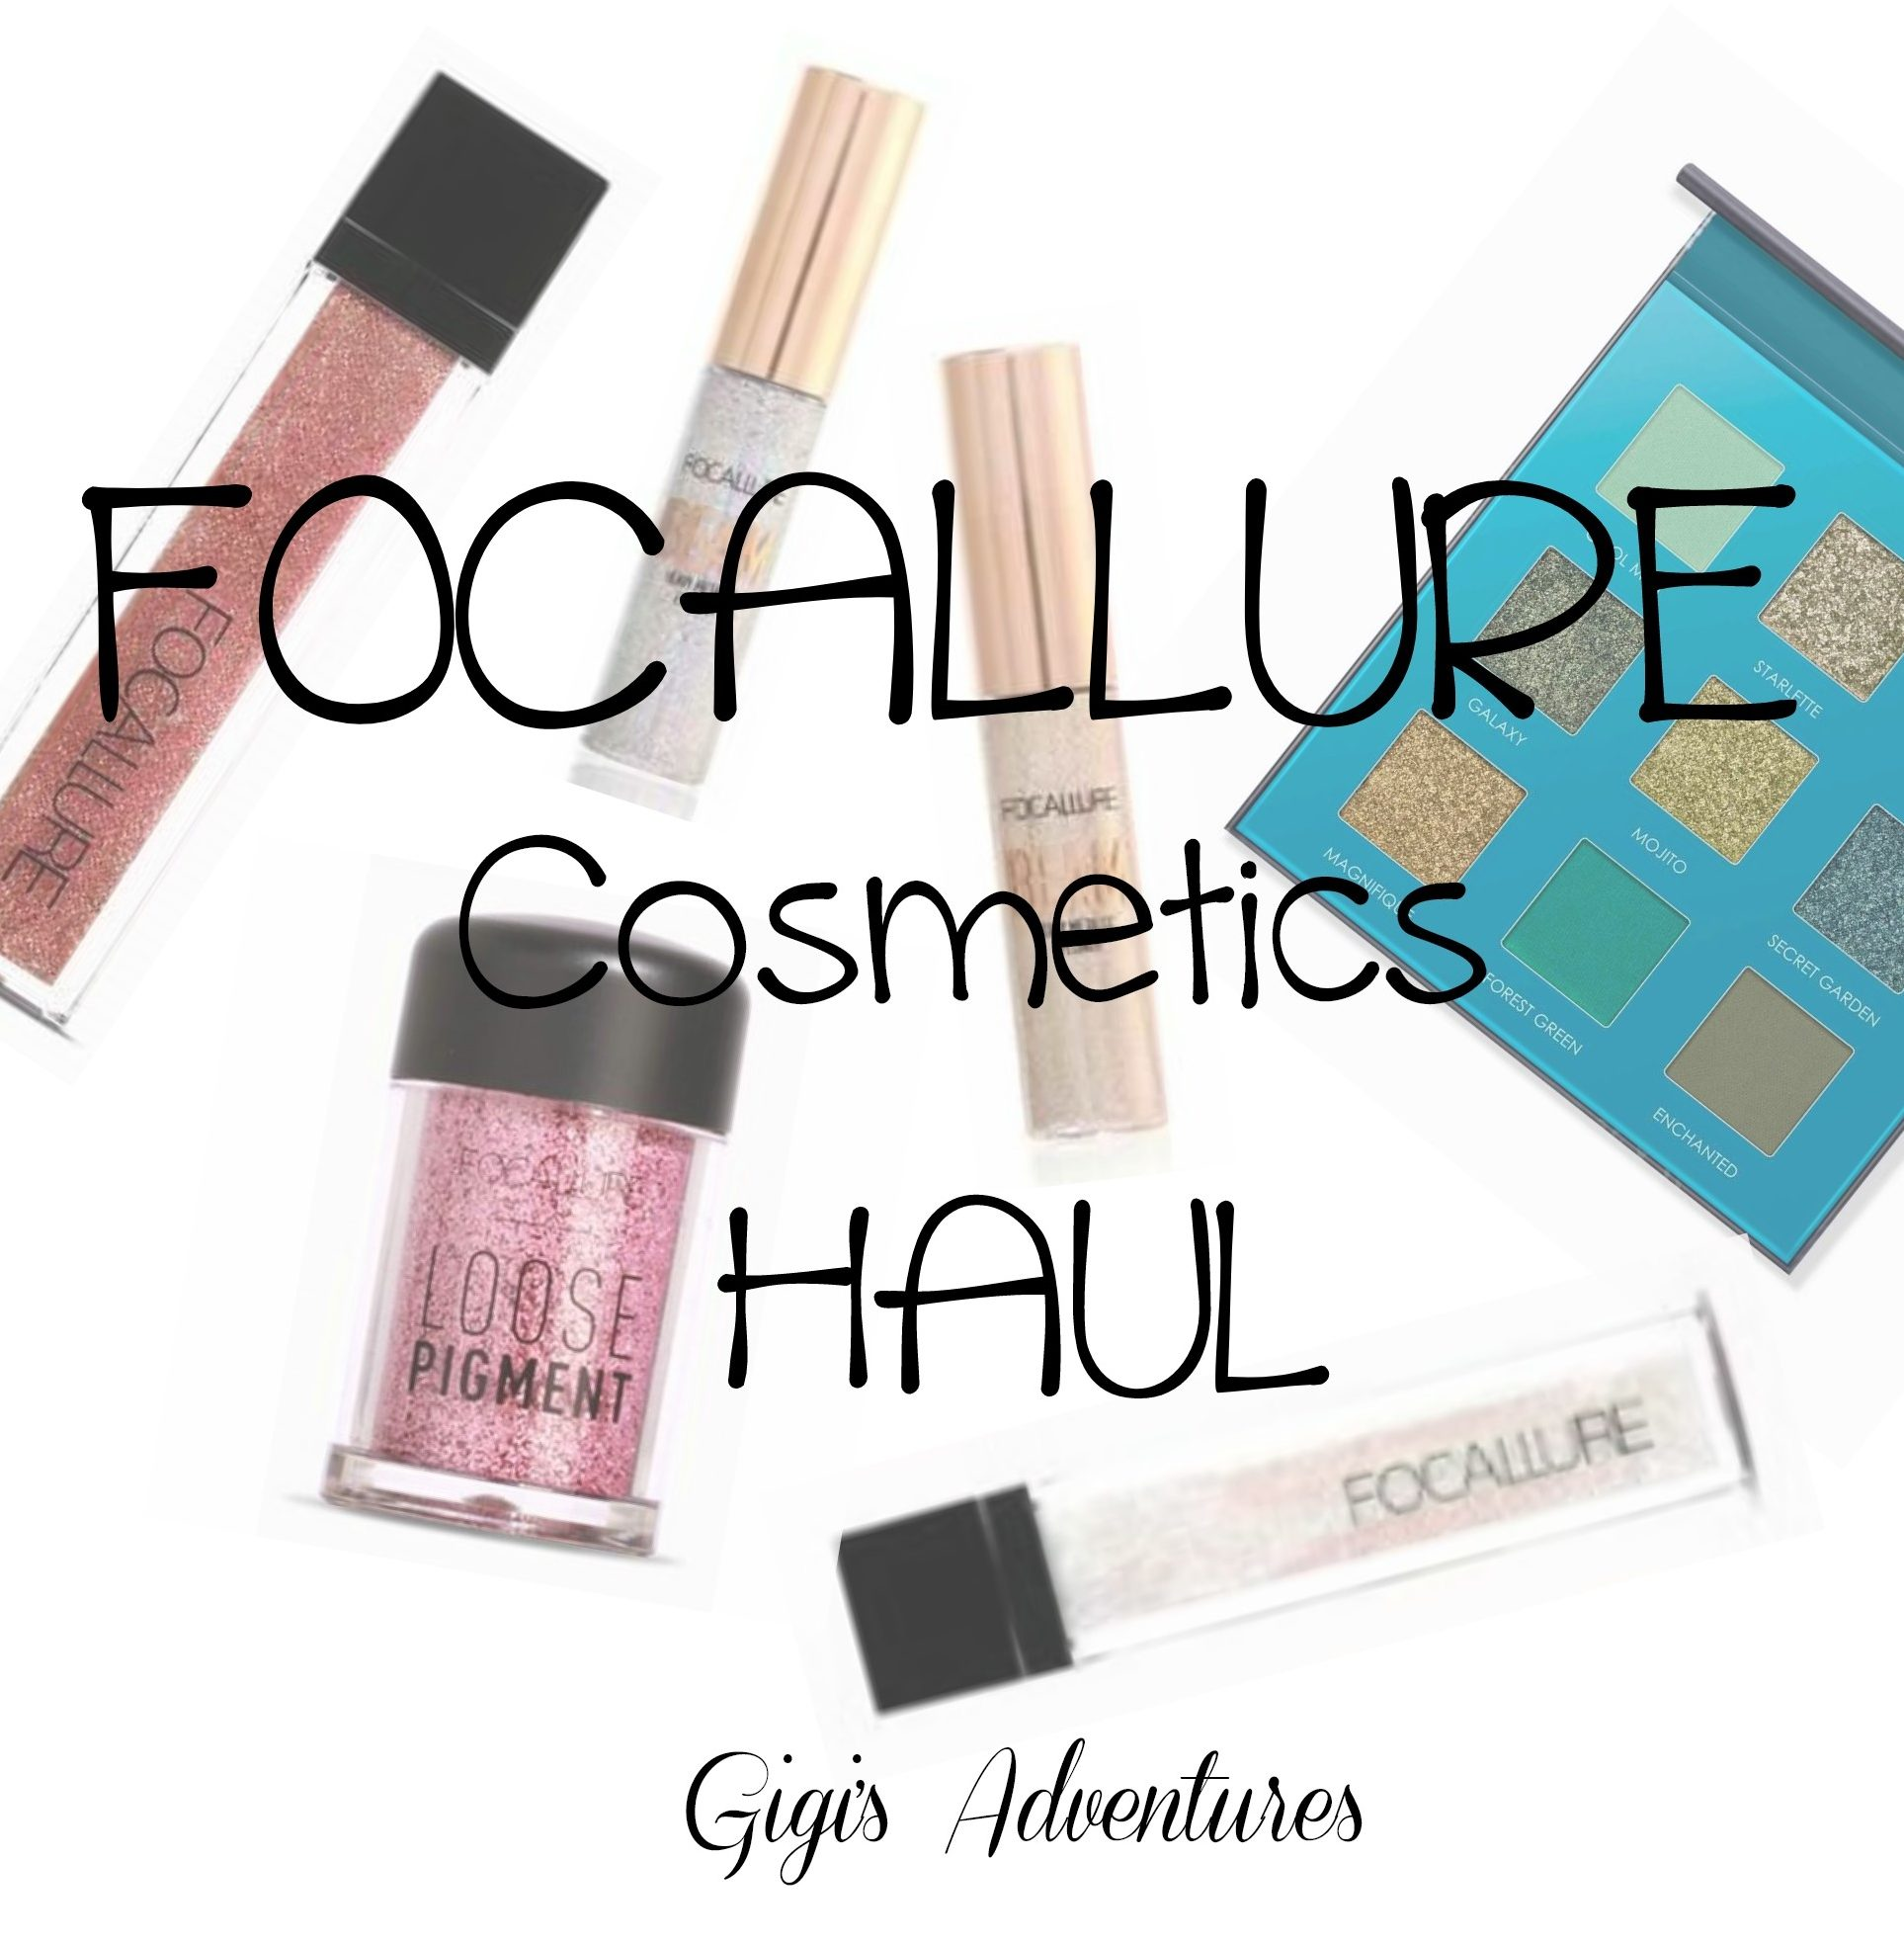 Focallure Makeup Eyeshadows and